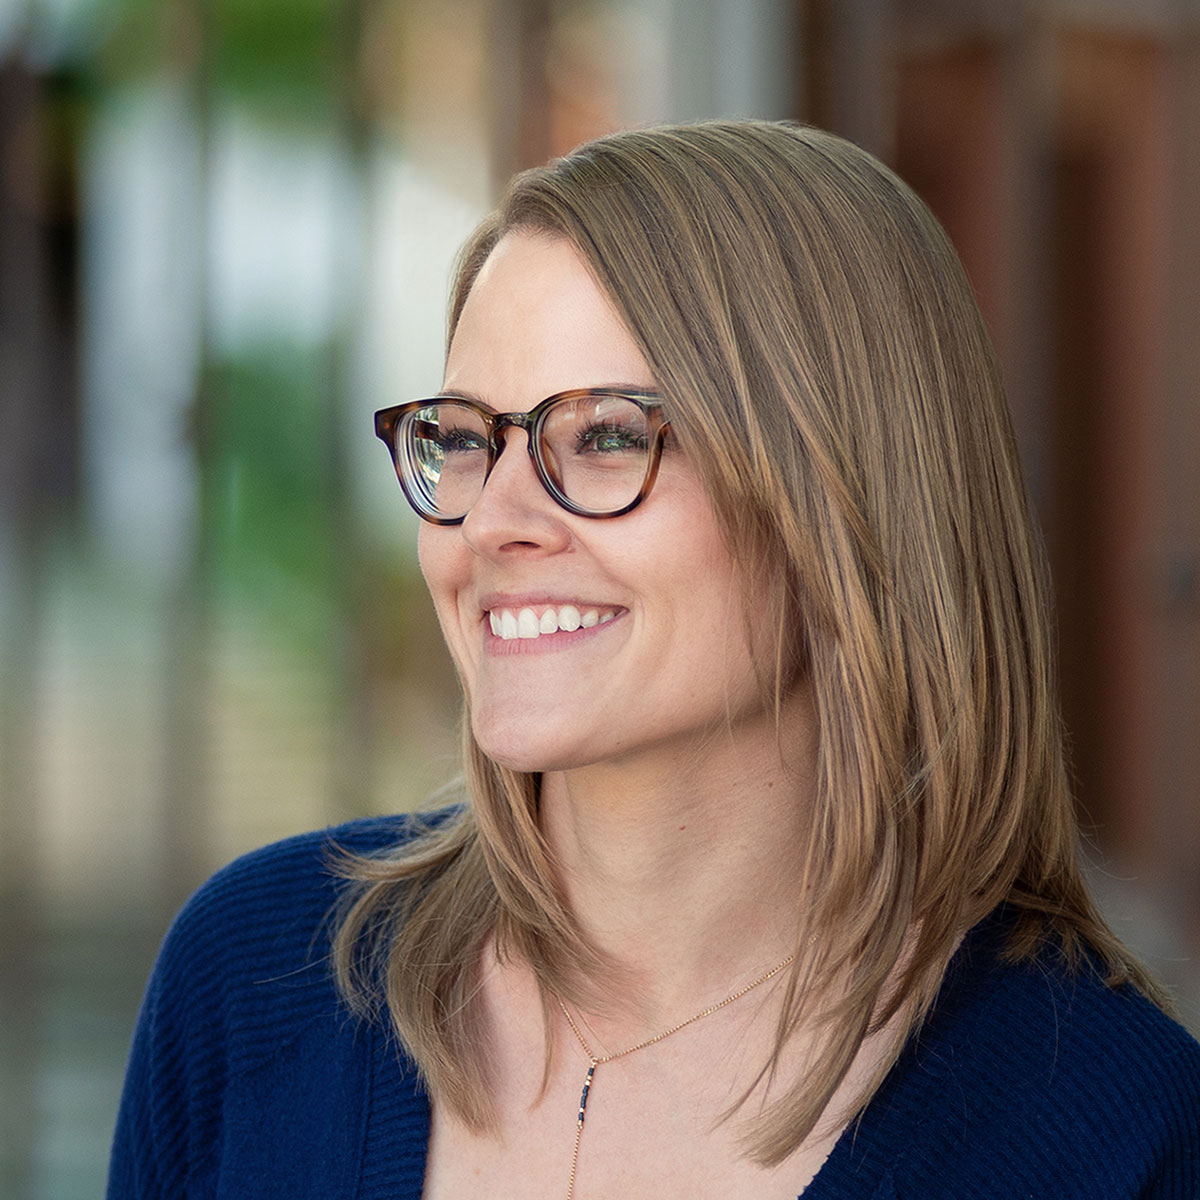 Katie Peterson is a project manager for Los Angeles architecture firm Tim Barber Ltd.